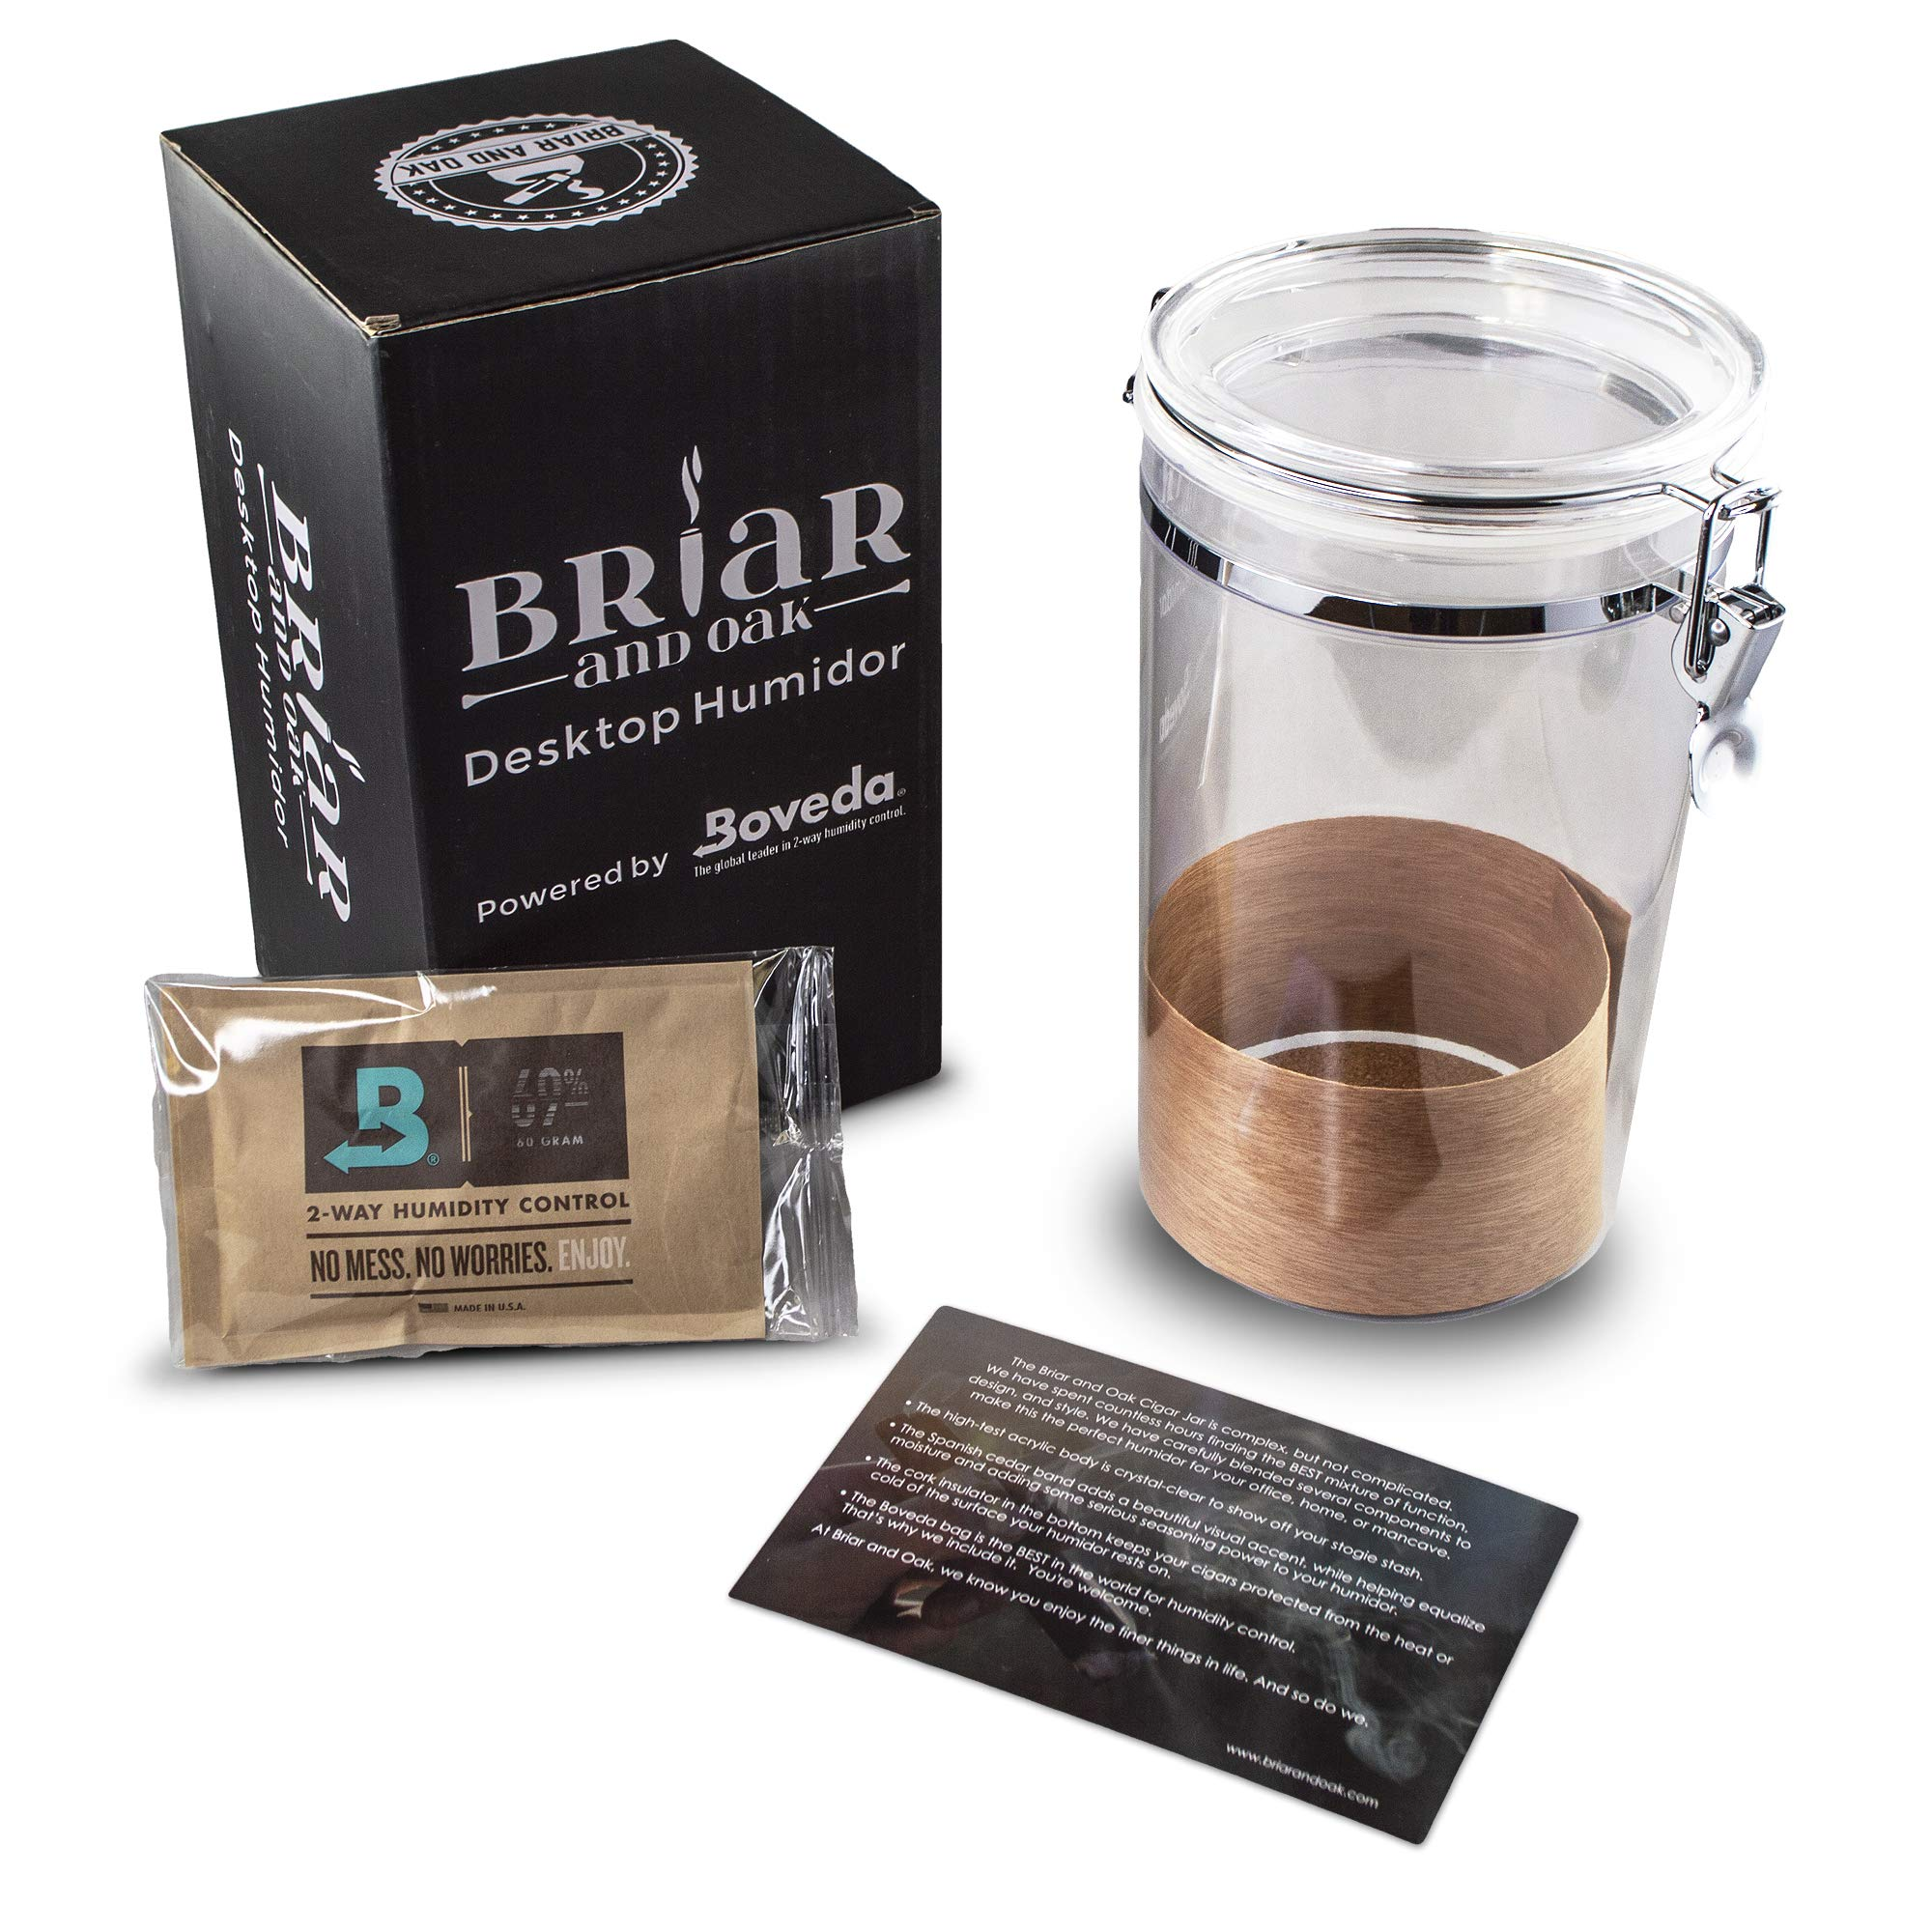 Desktop Acrylic Cigar Humidor Powered by Boveda 69 Humidity Pack with Spanish Cedar Liner for Cigar Display and Storage